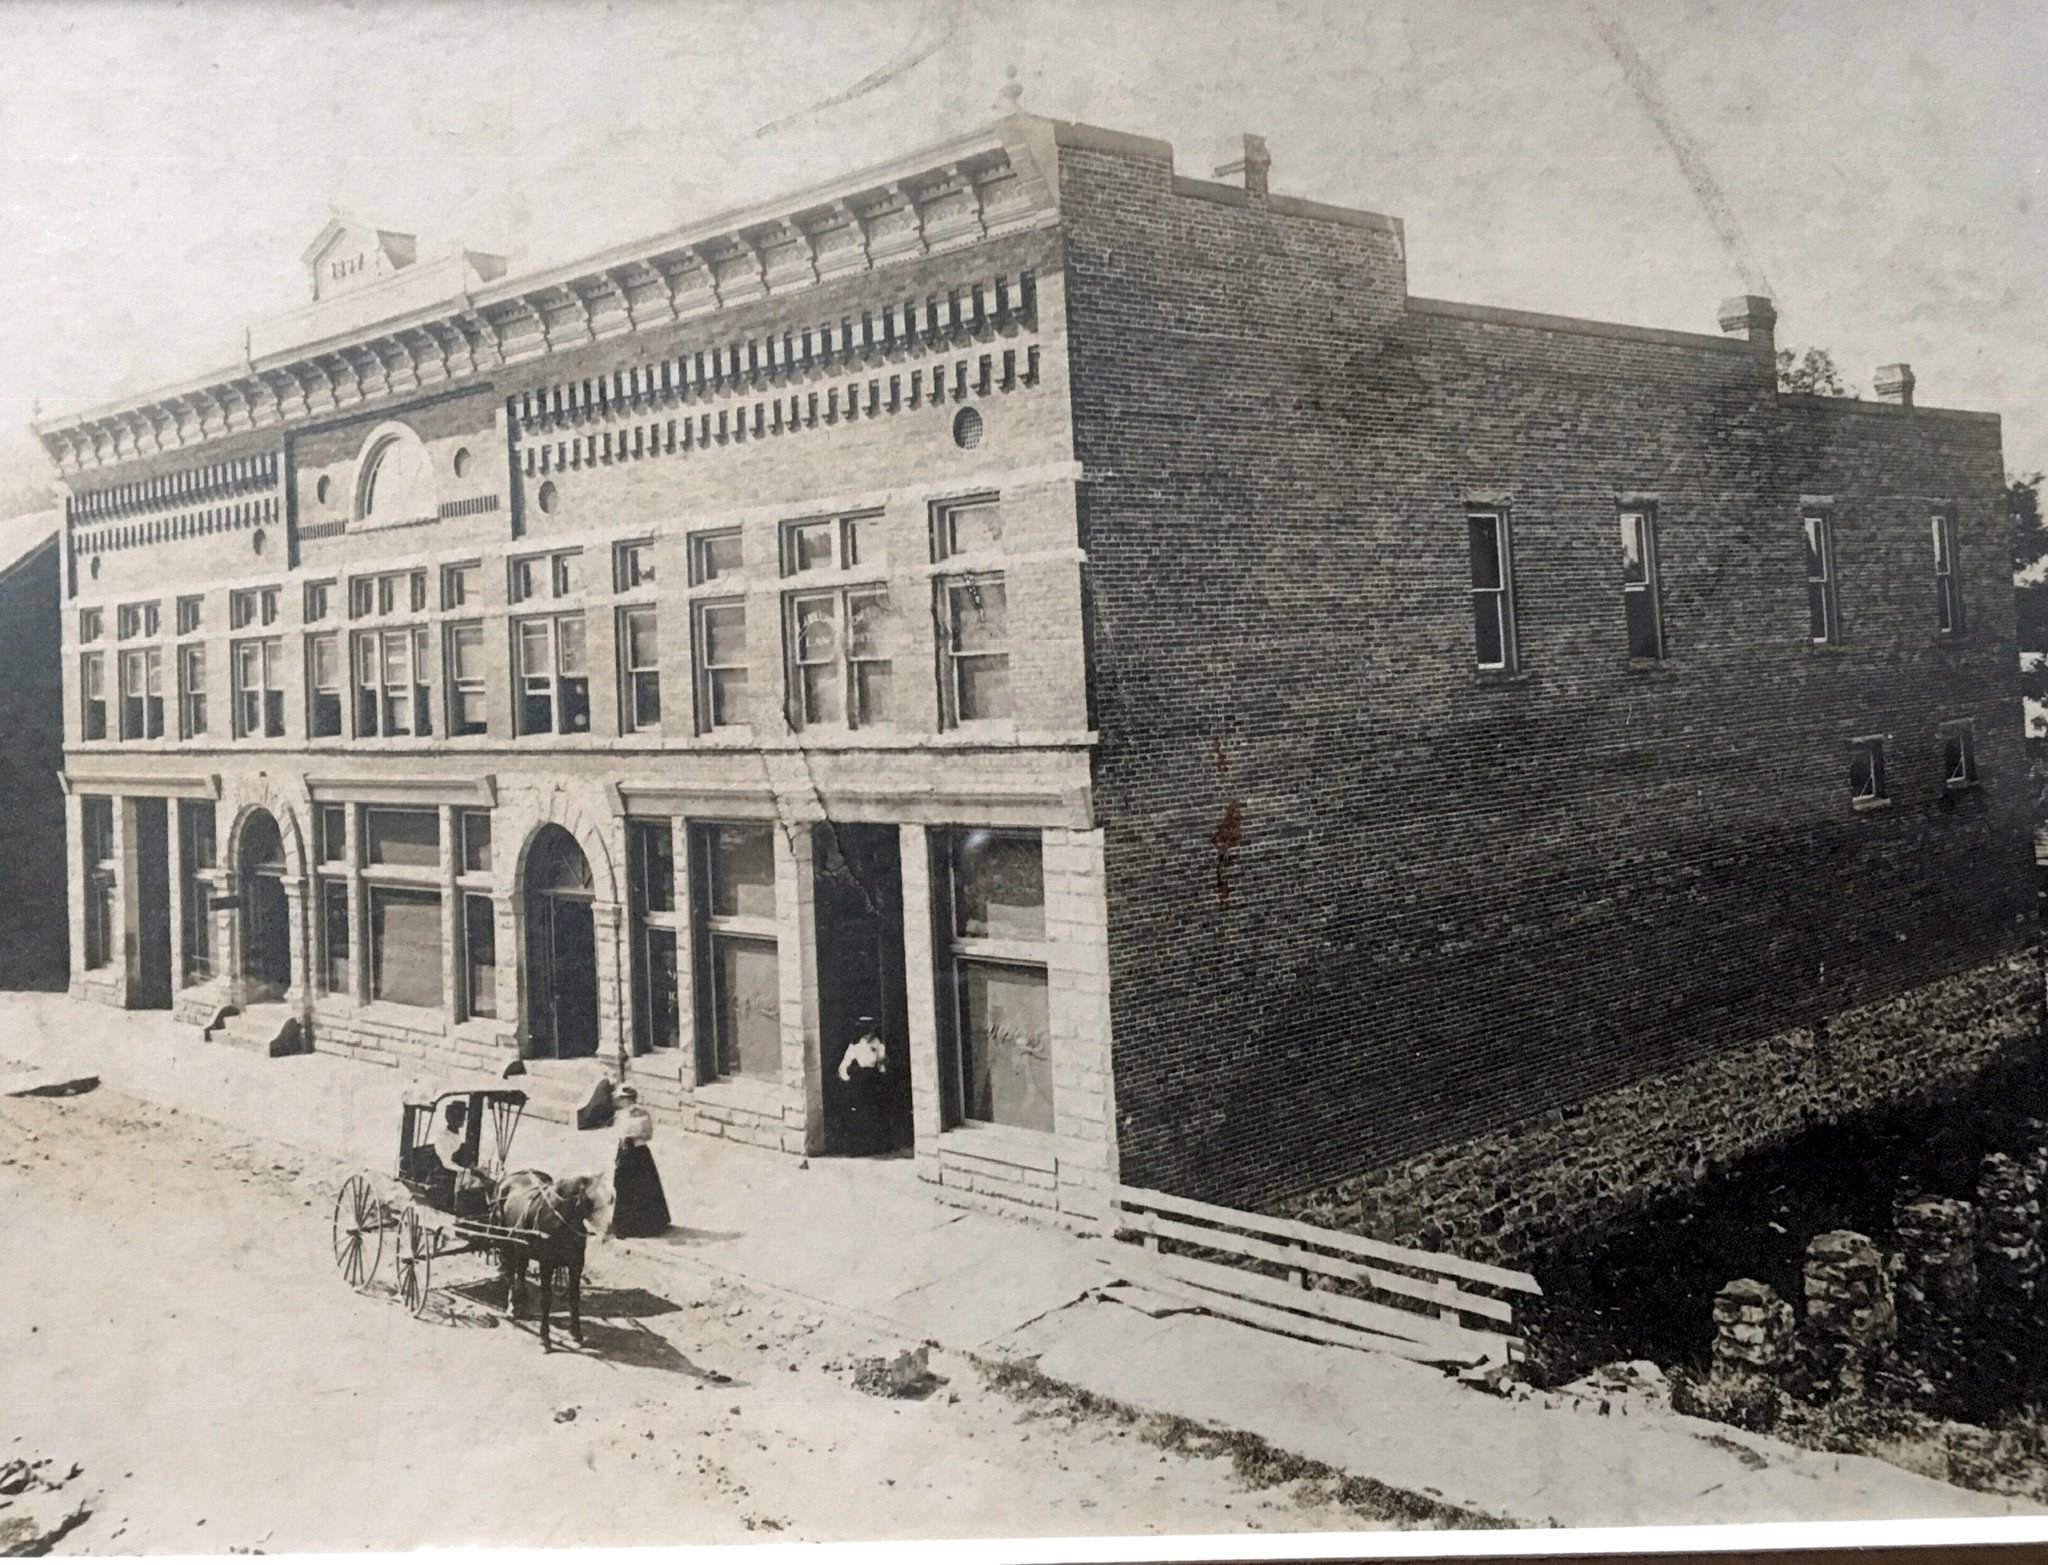 Greenbrier Valley Bank Building soon after completion in 1897. Photo courtesy of Judy Deegans.